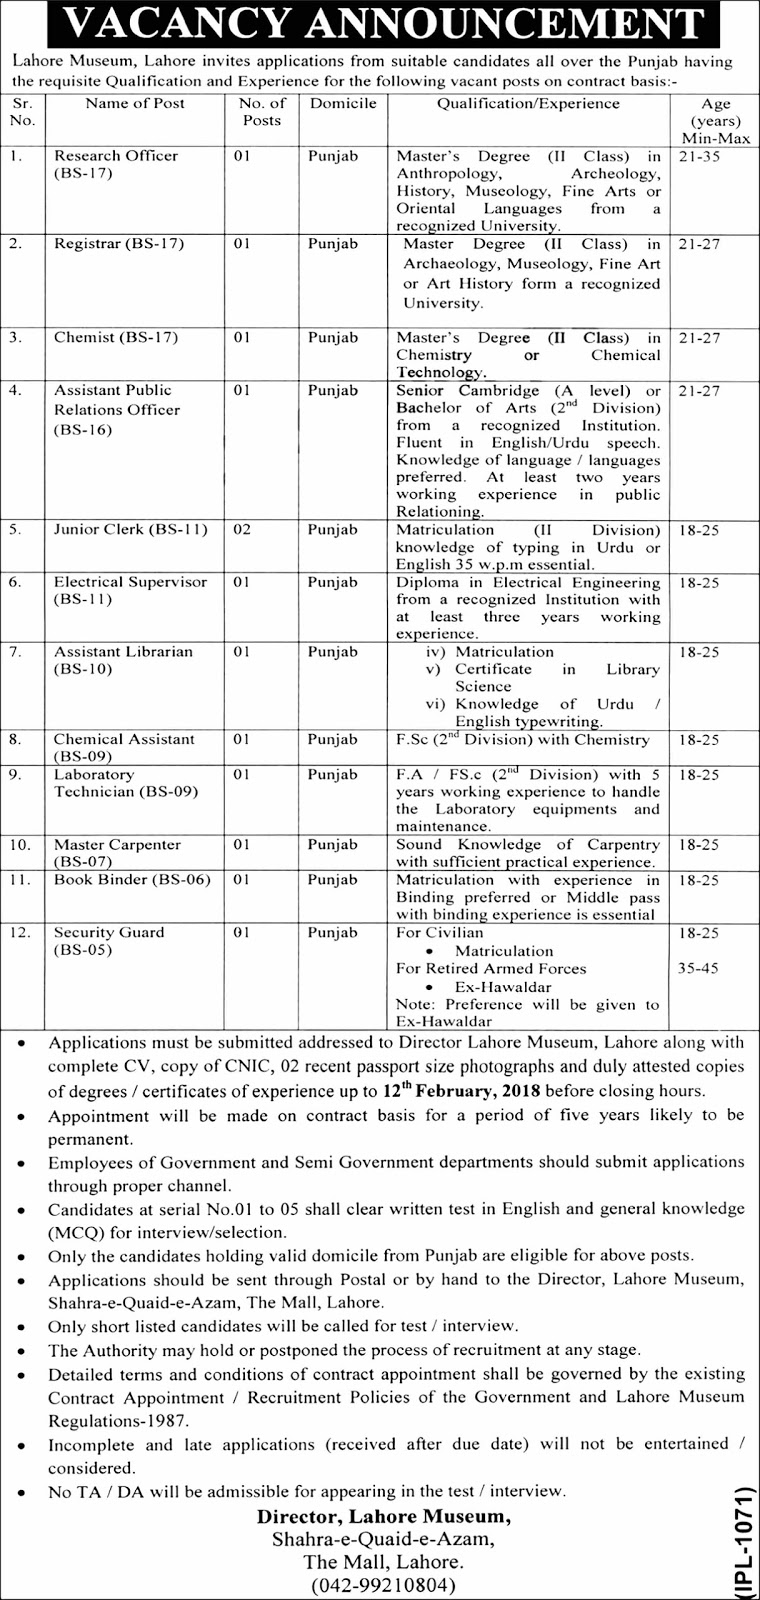 Jobs In Lahore Museum by Govt Of Punjab January 2018